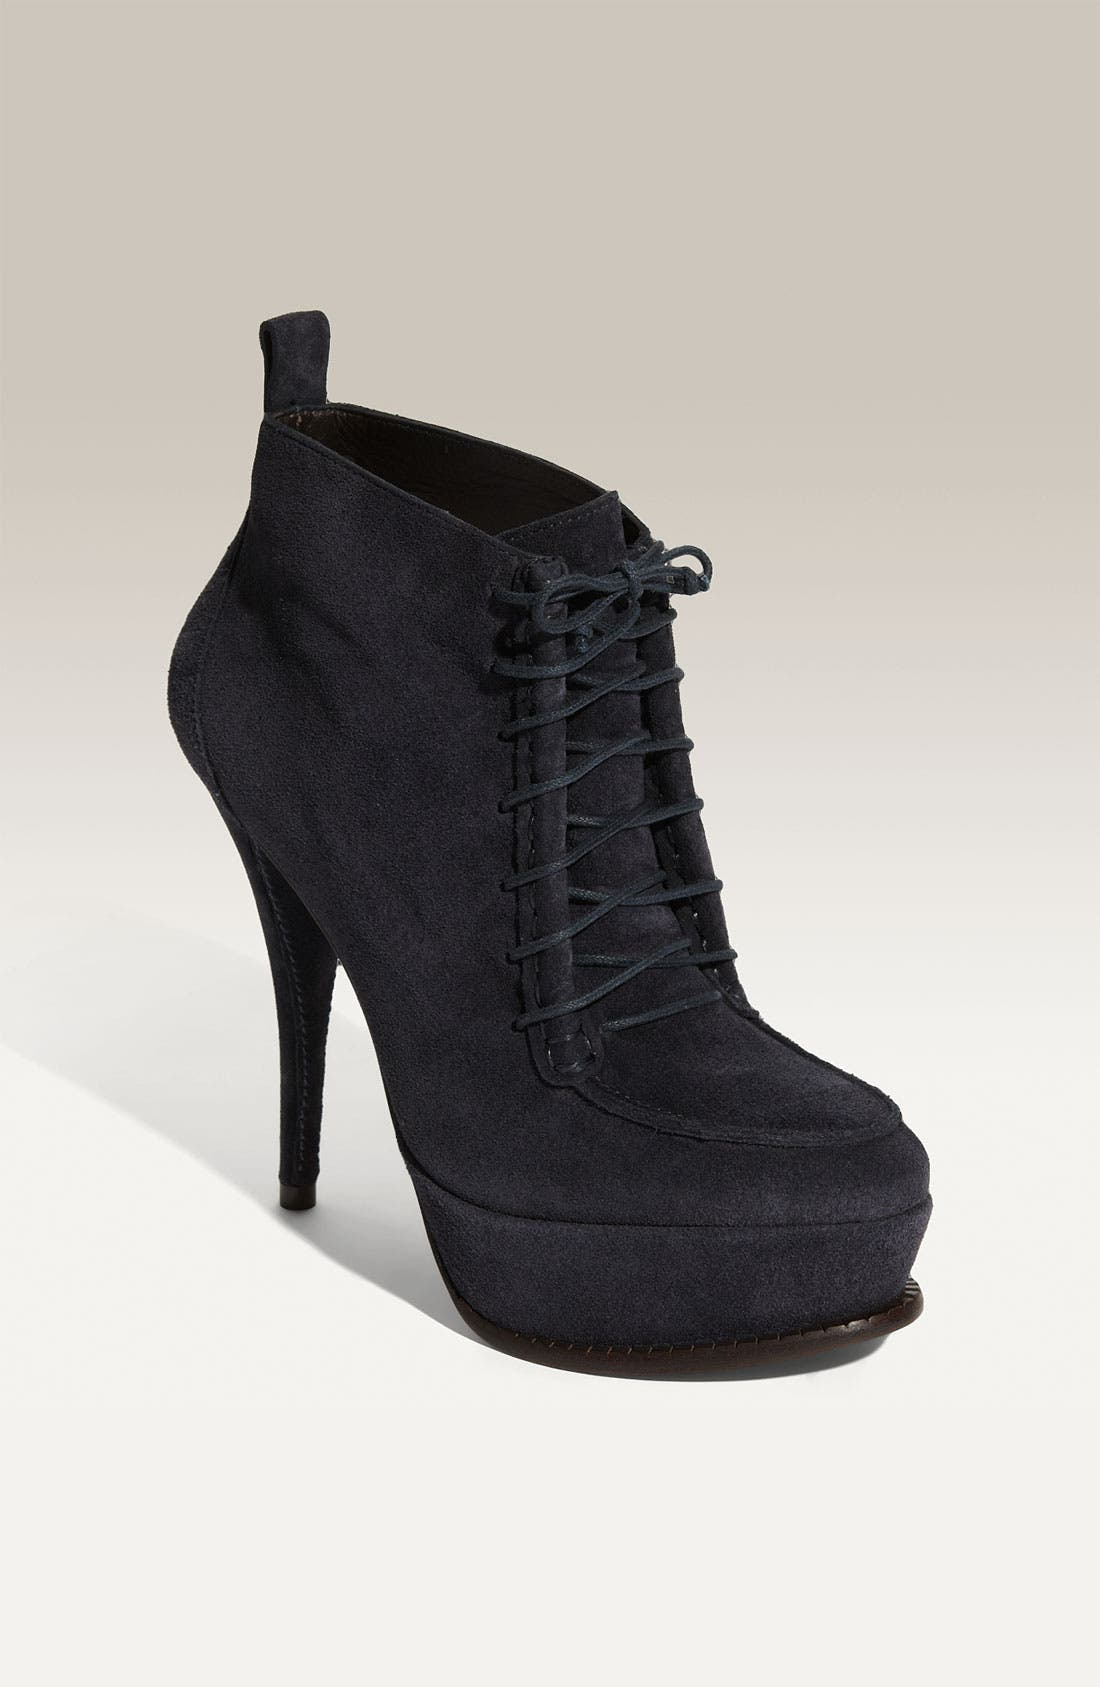 Alternate Image 1 Selected - Elizabeth and James 'E-Moxy' Suede Bootie